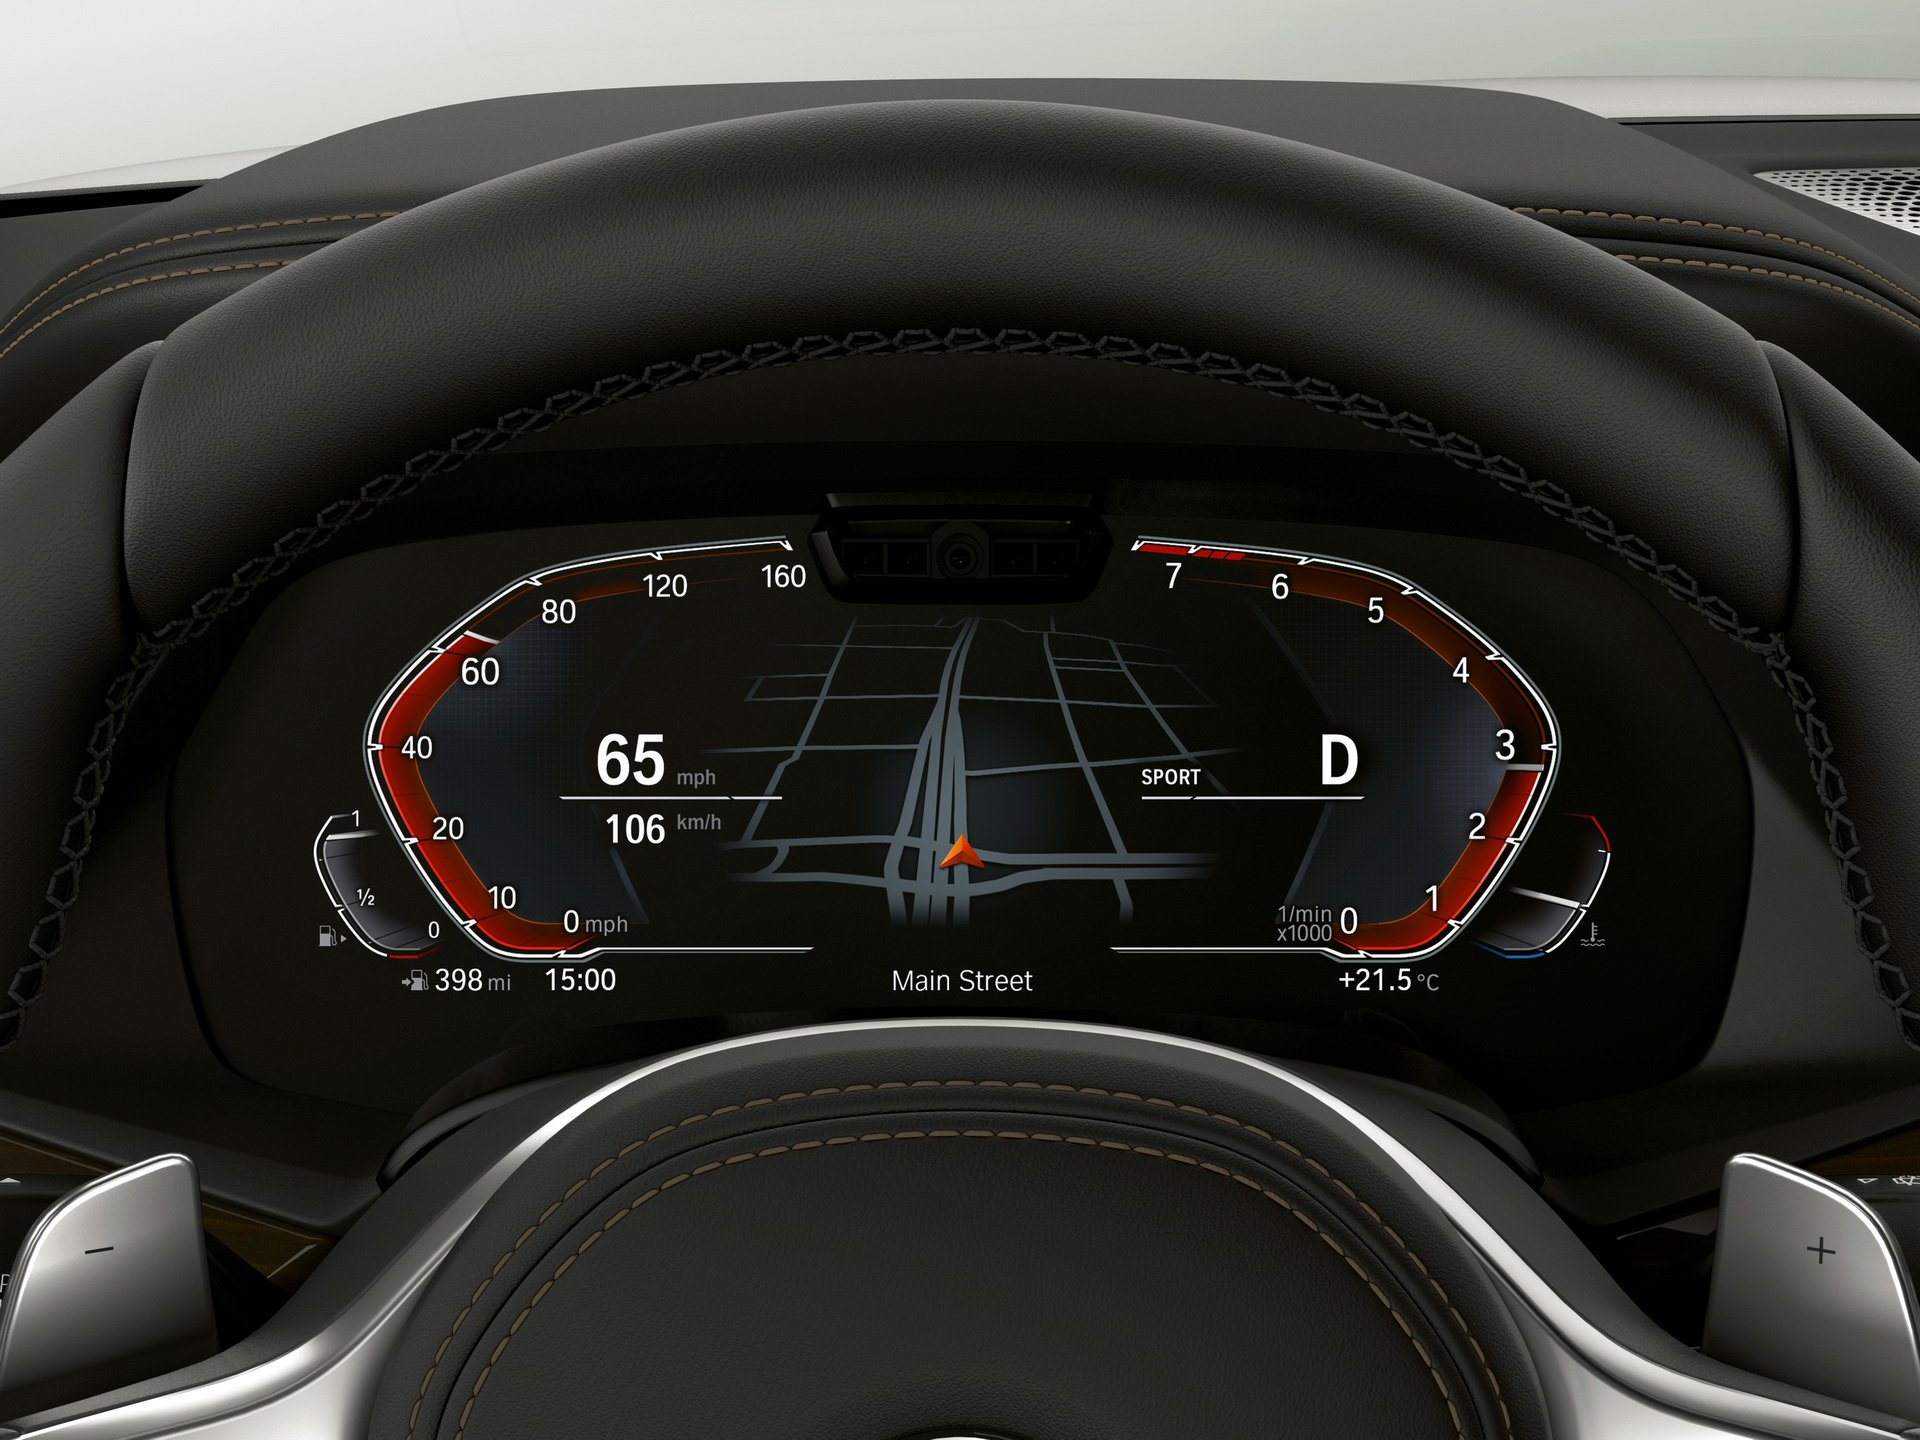 bmw-digital-cockpit-5.jpg